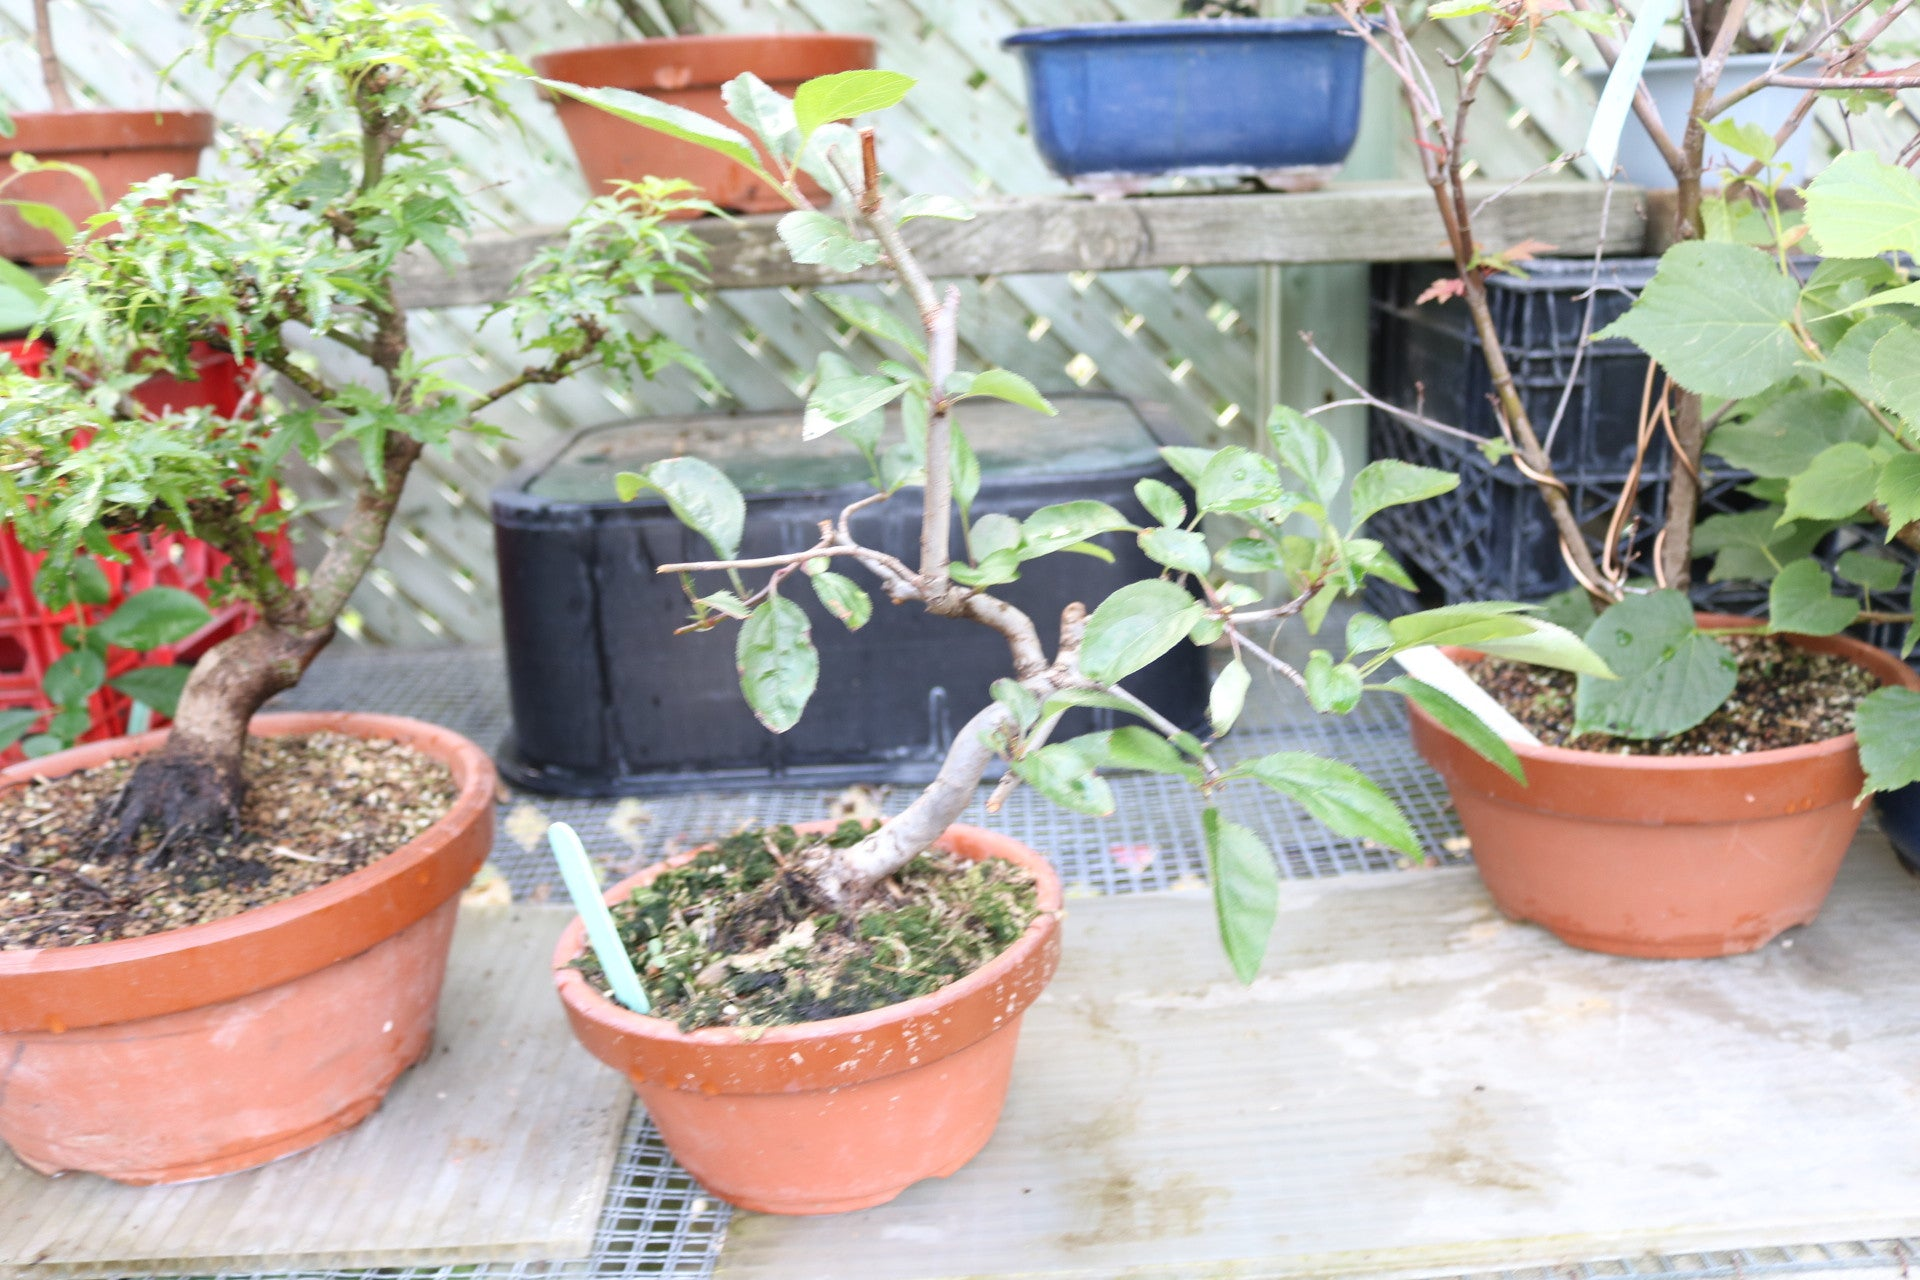 Apple bonsai ' Hime Ringo' & others